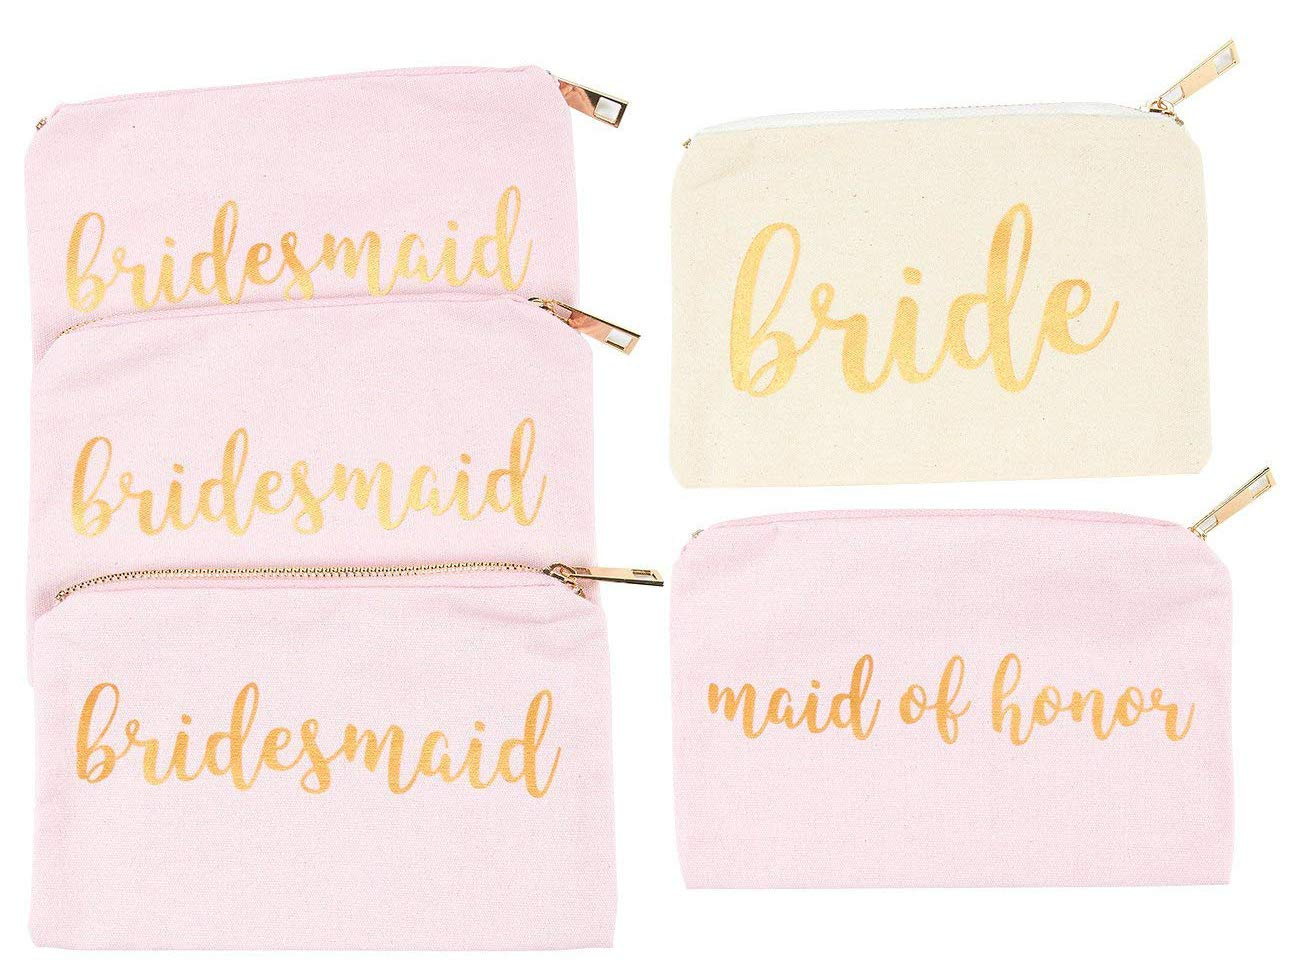 Bridal Shower Makeup Bag - 5-Pack Cosmetic Pouches for Wedding Favors, Bachelorette Party Gifts, and Bridal Shower Accessories, 7 x 5 Inches Juvale